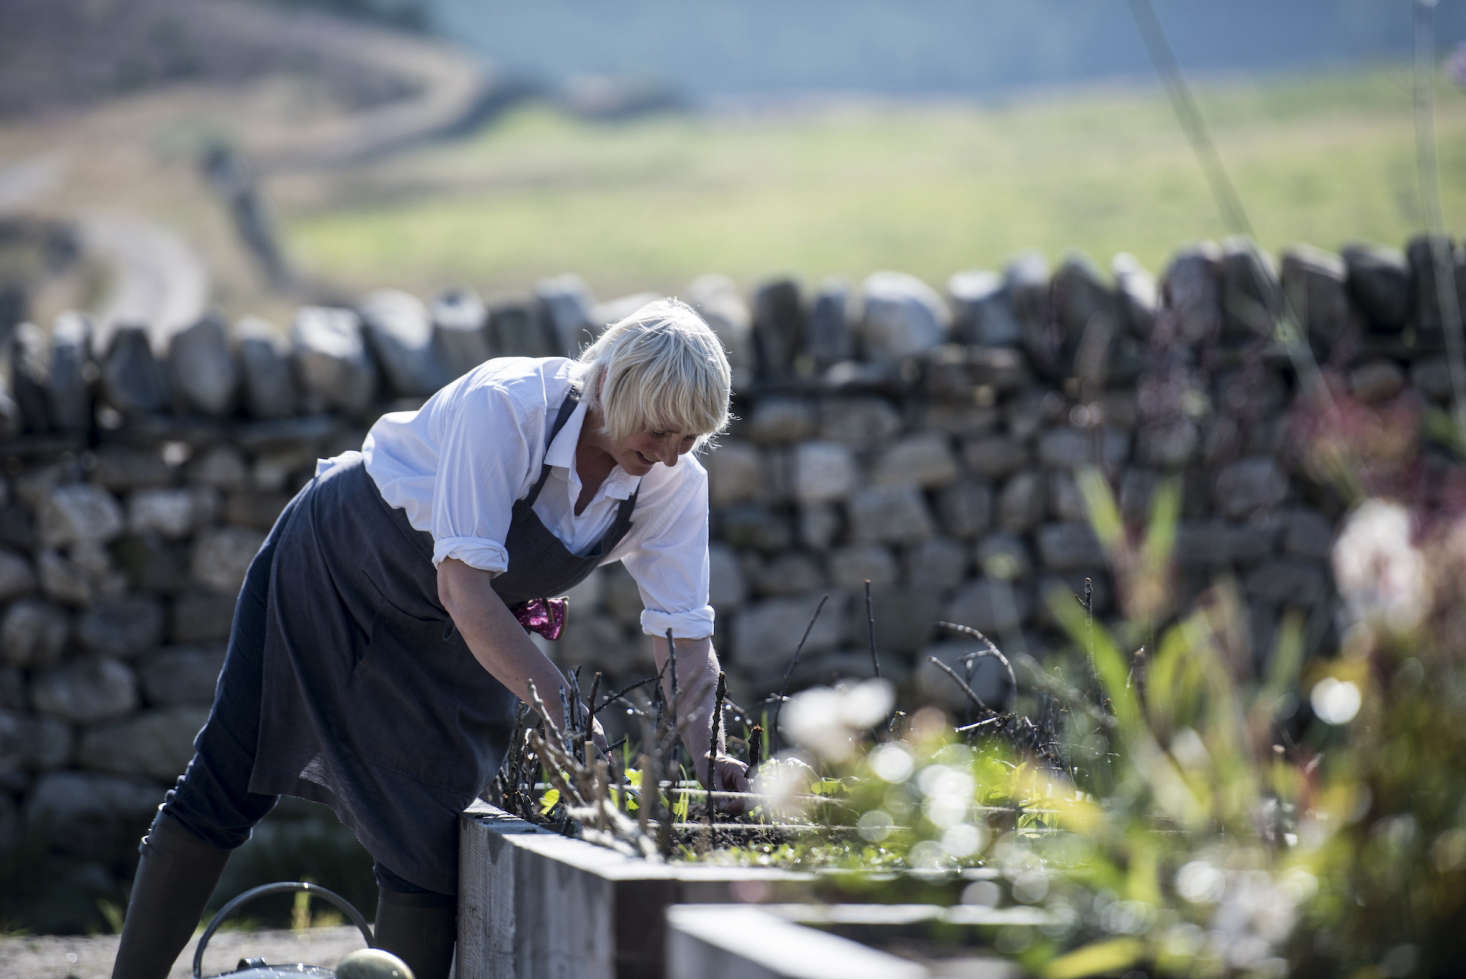 A farmer (fittingly, wearing wellies and a linen apron) tends to the vegetable patch.